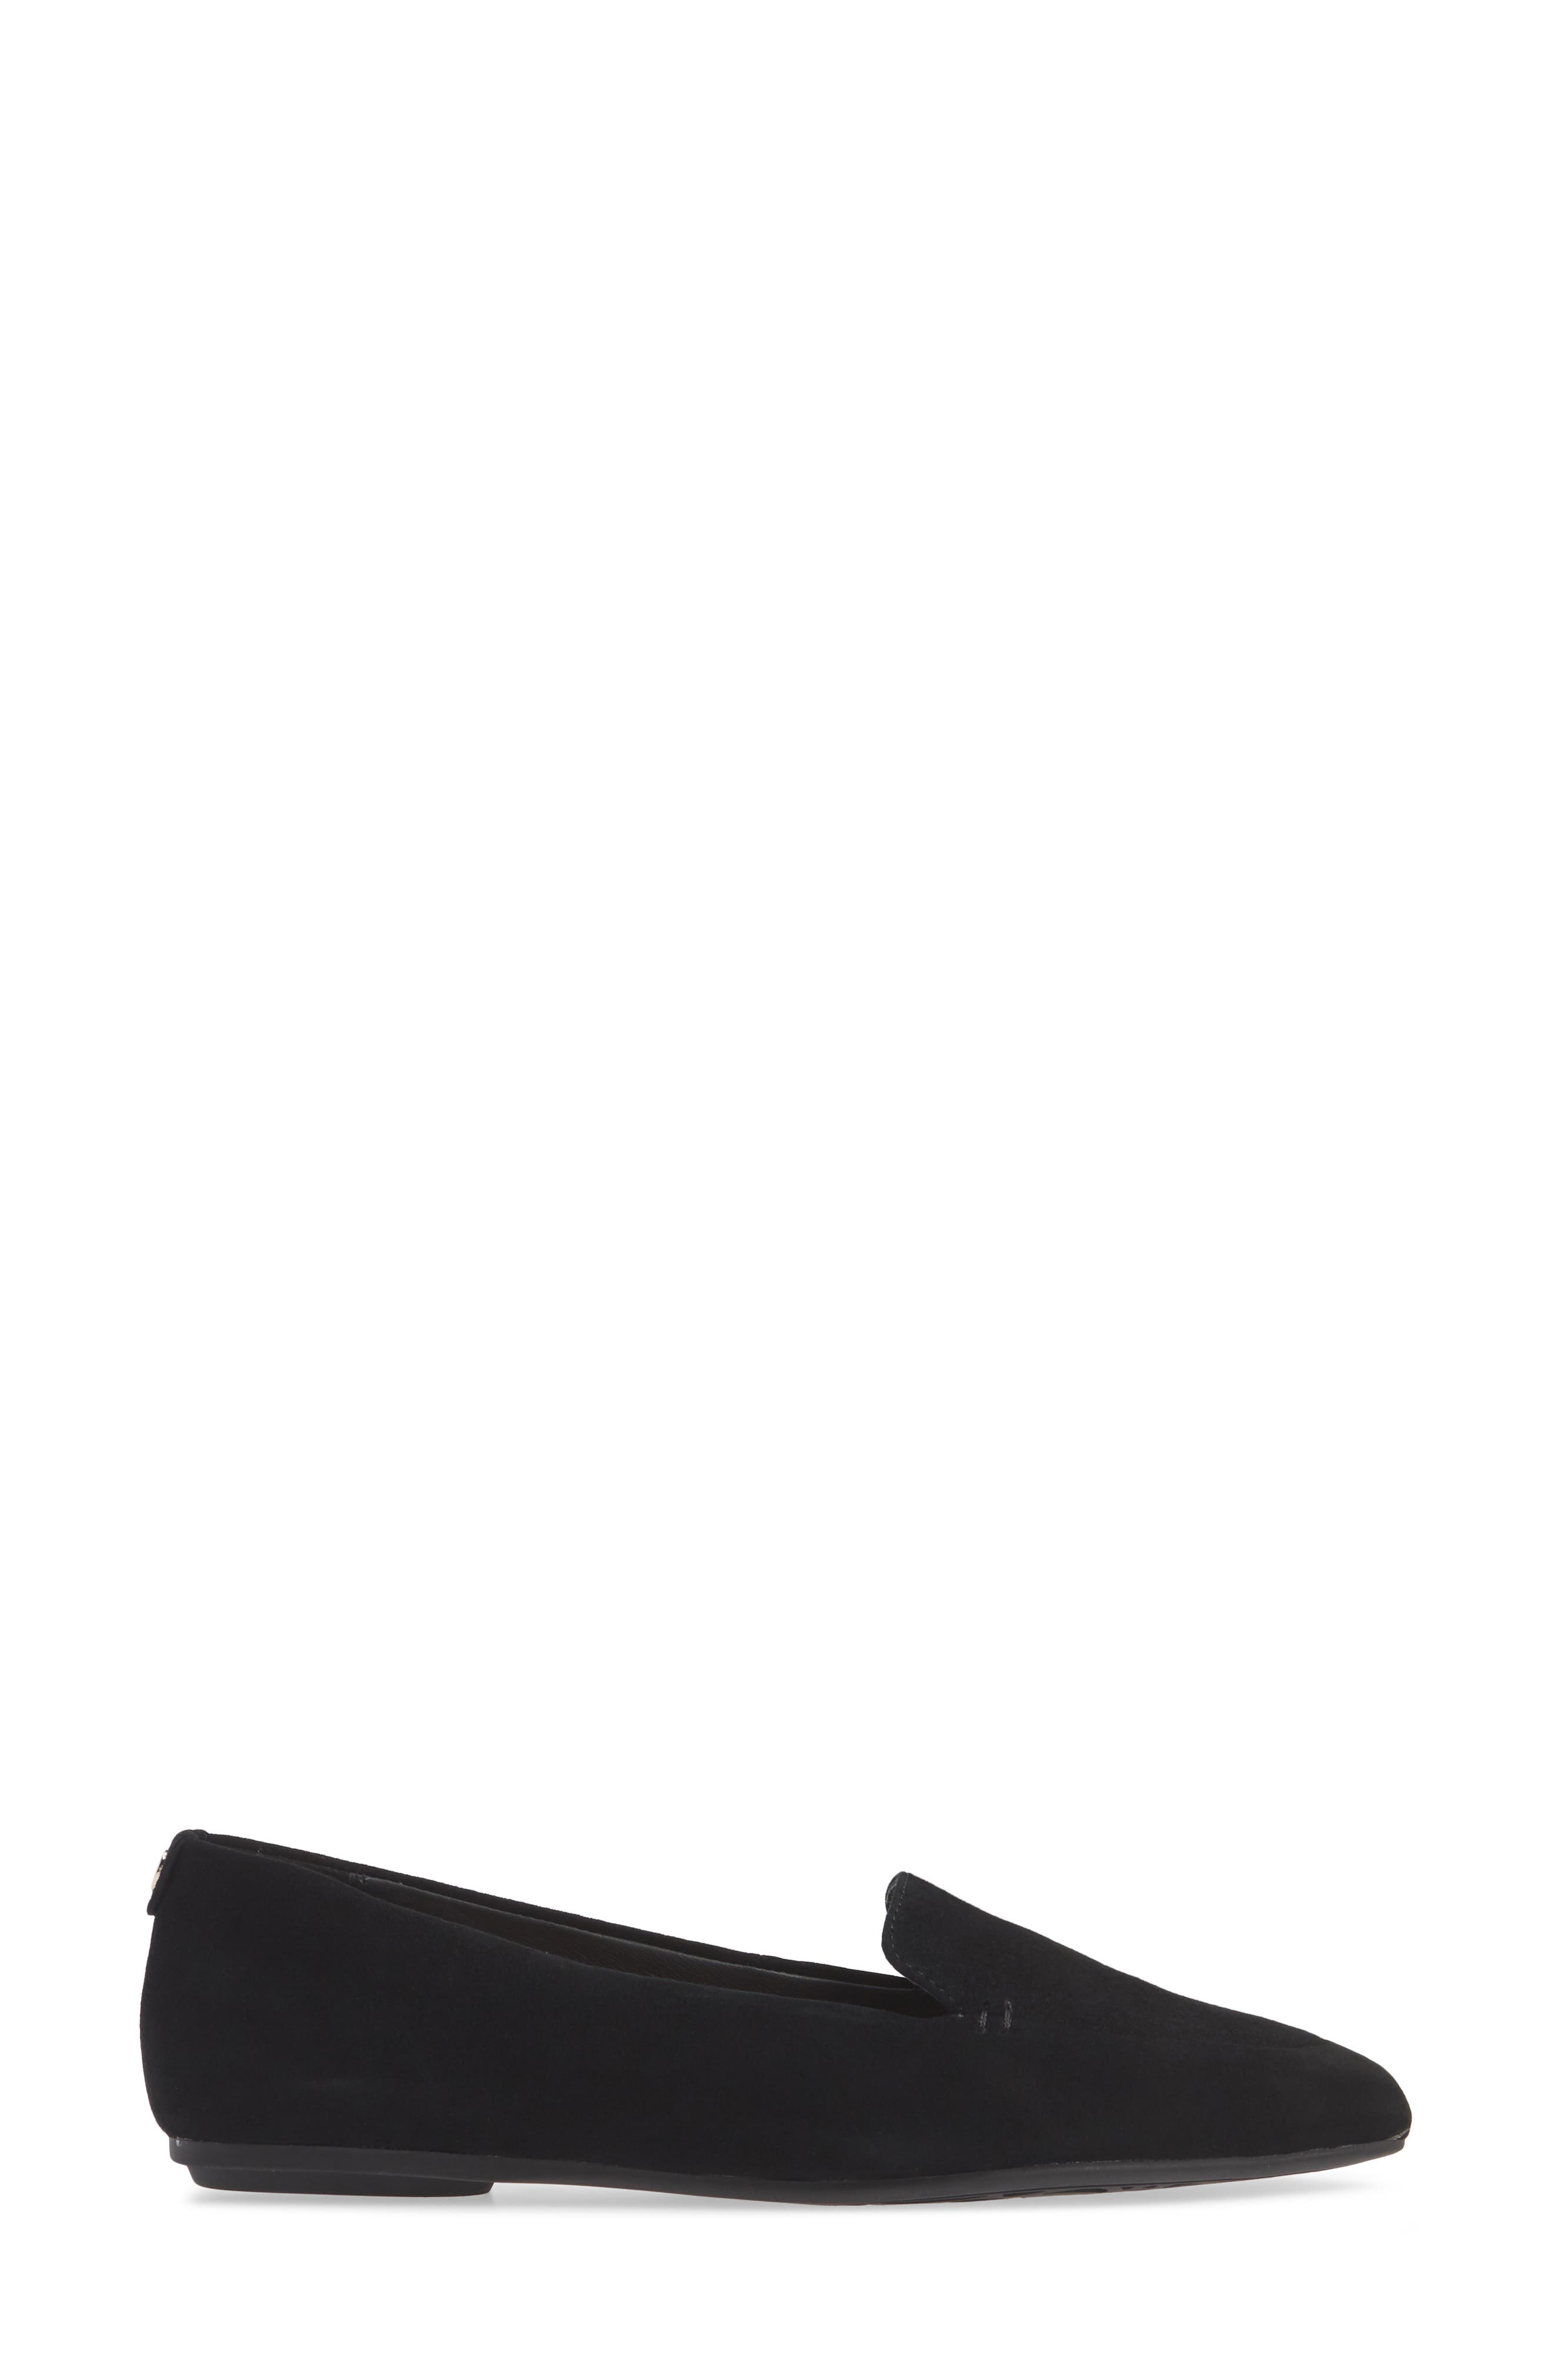 TARYN ROSE, Faye Pointy Toe Loafer, Alternate thumbnail 3, color, BLACK/ BLACK SUEDE